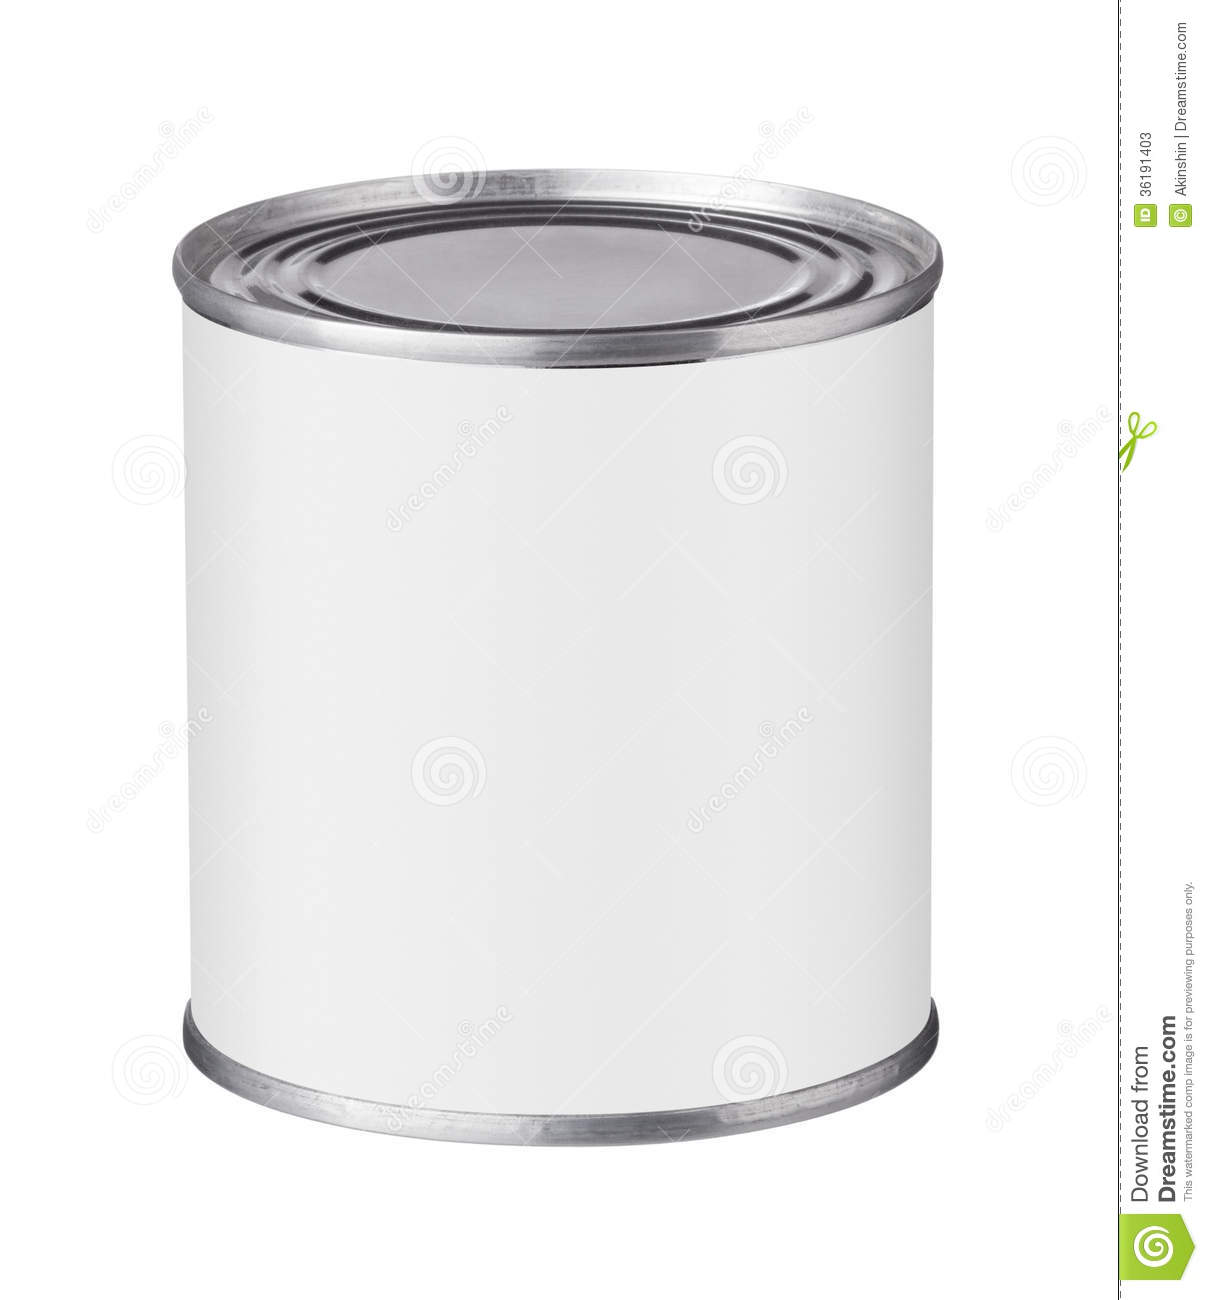 Blank Soup Can Clipart tin can with a blank label stock photos - image ...